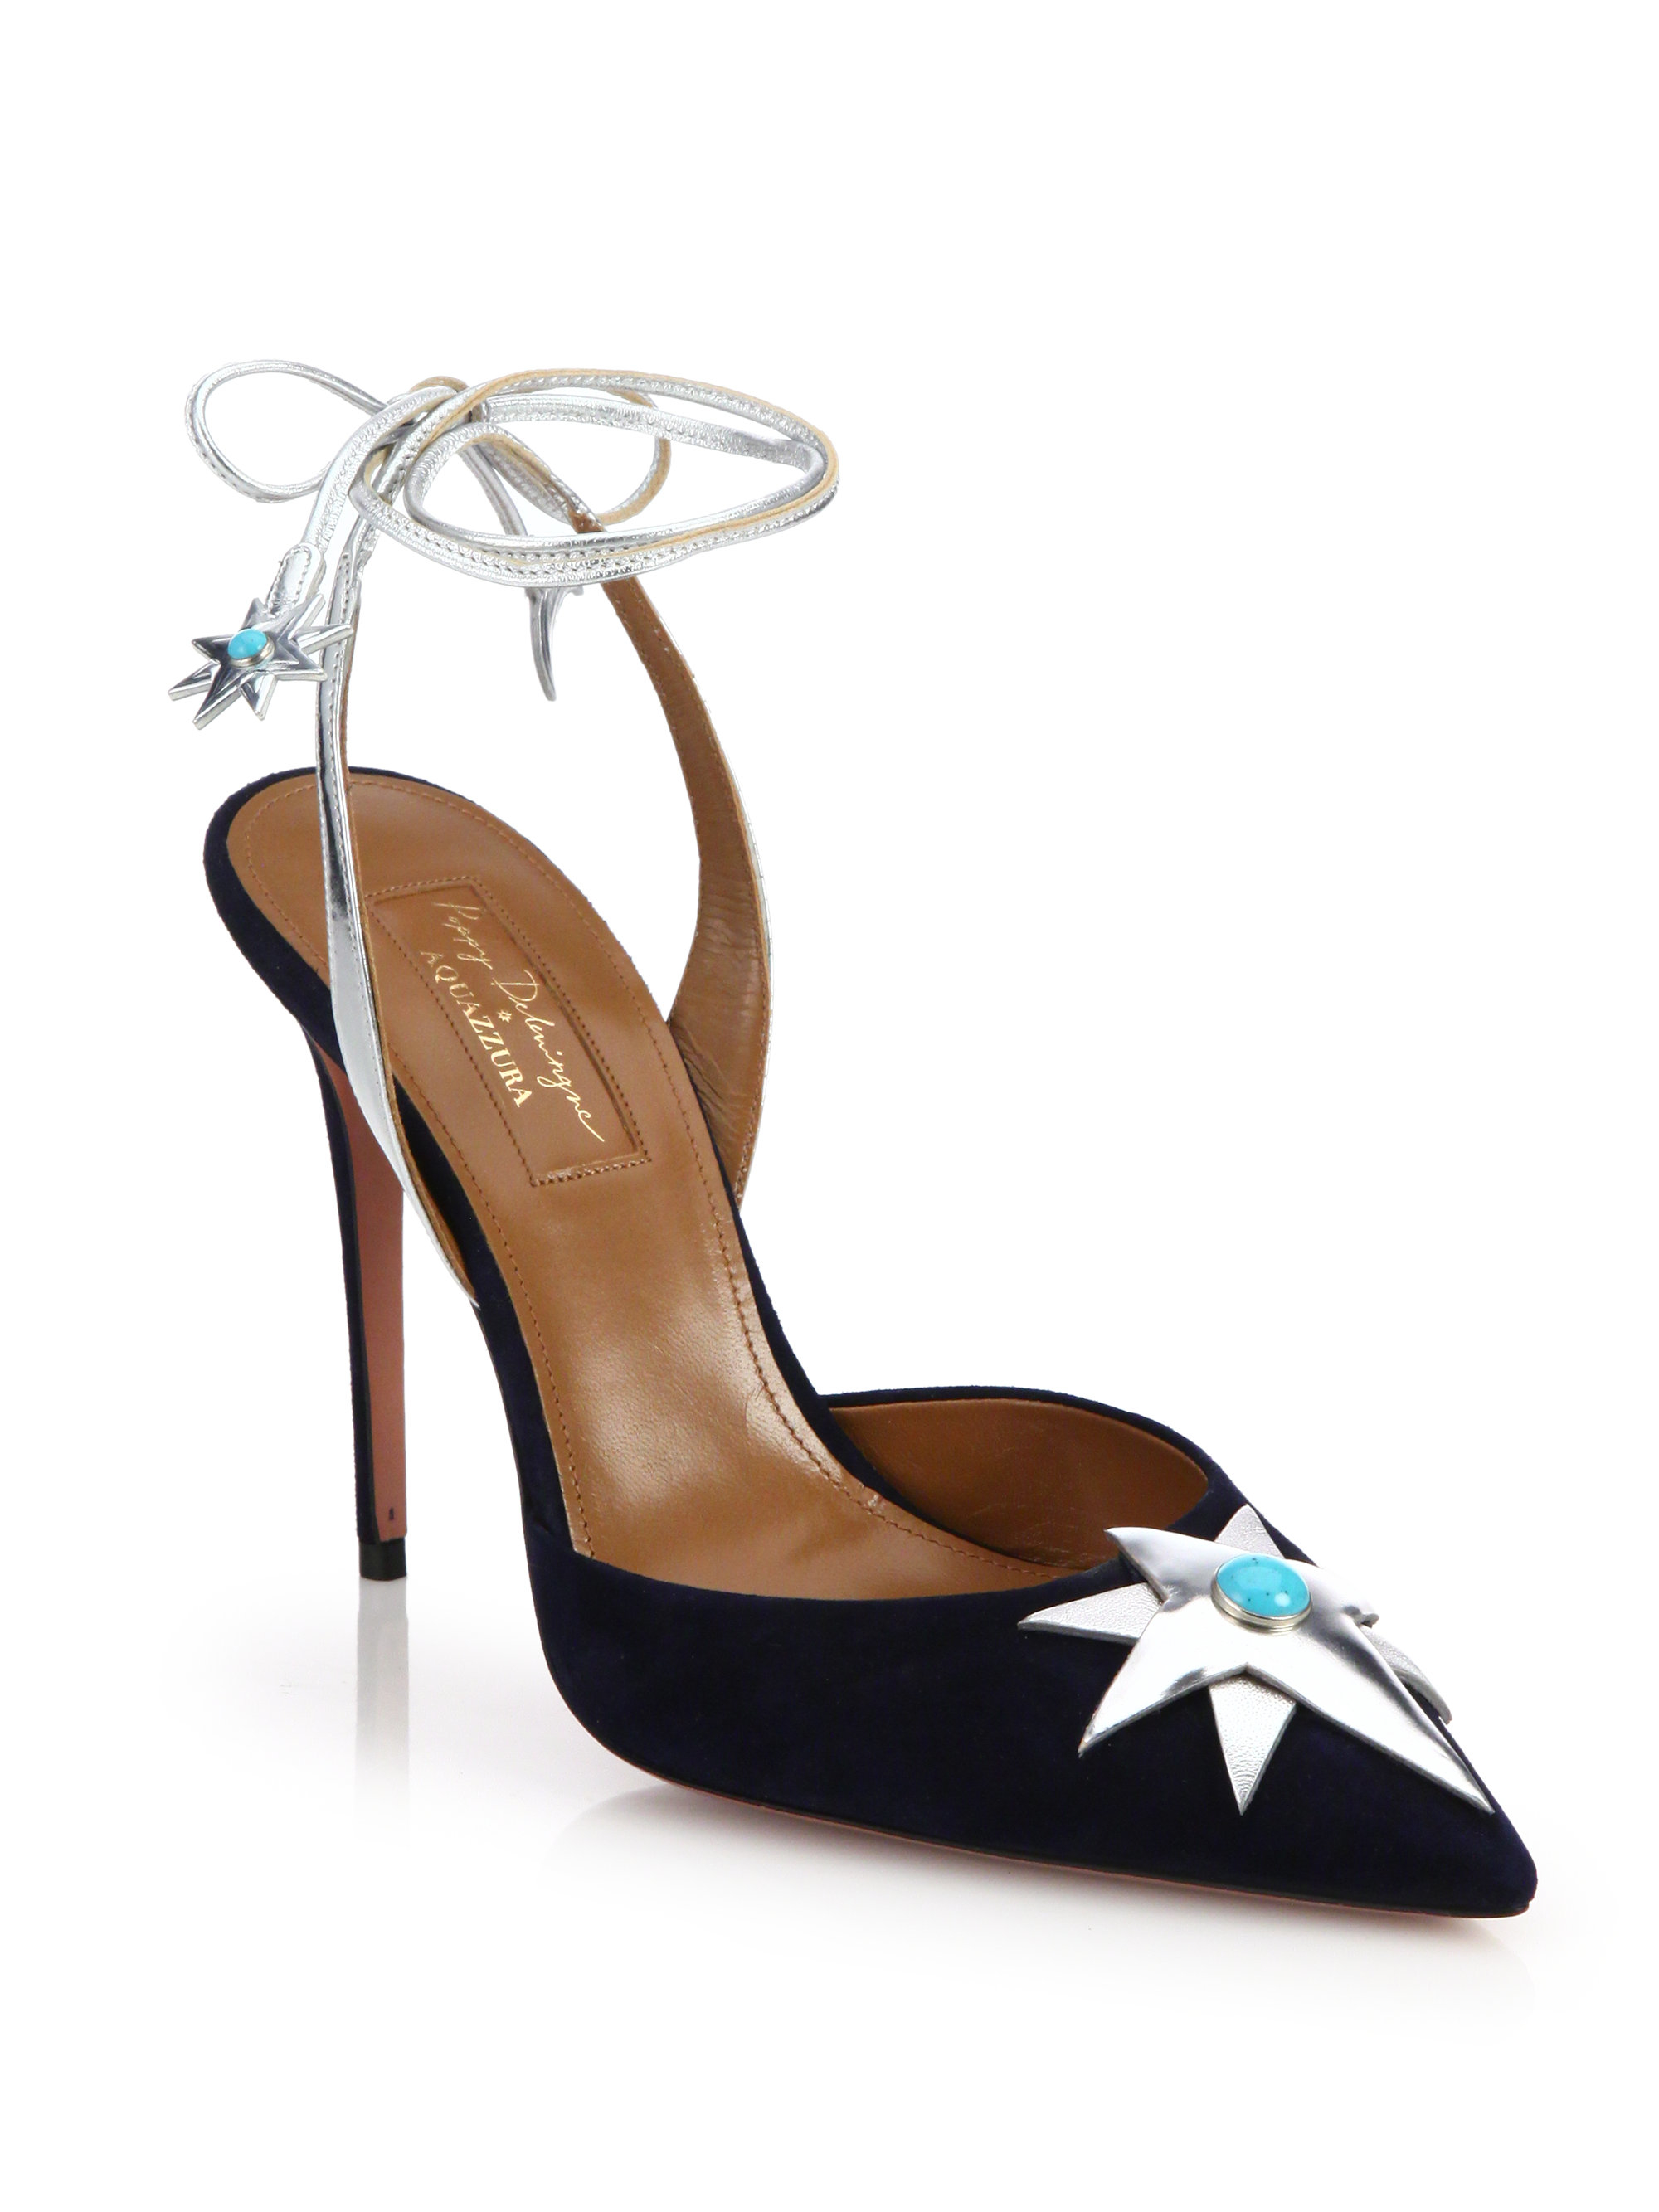 18a6c1fc39 Lyst - Aquazzura Midnight Leather and Suede Slingback Pumps in Blue